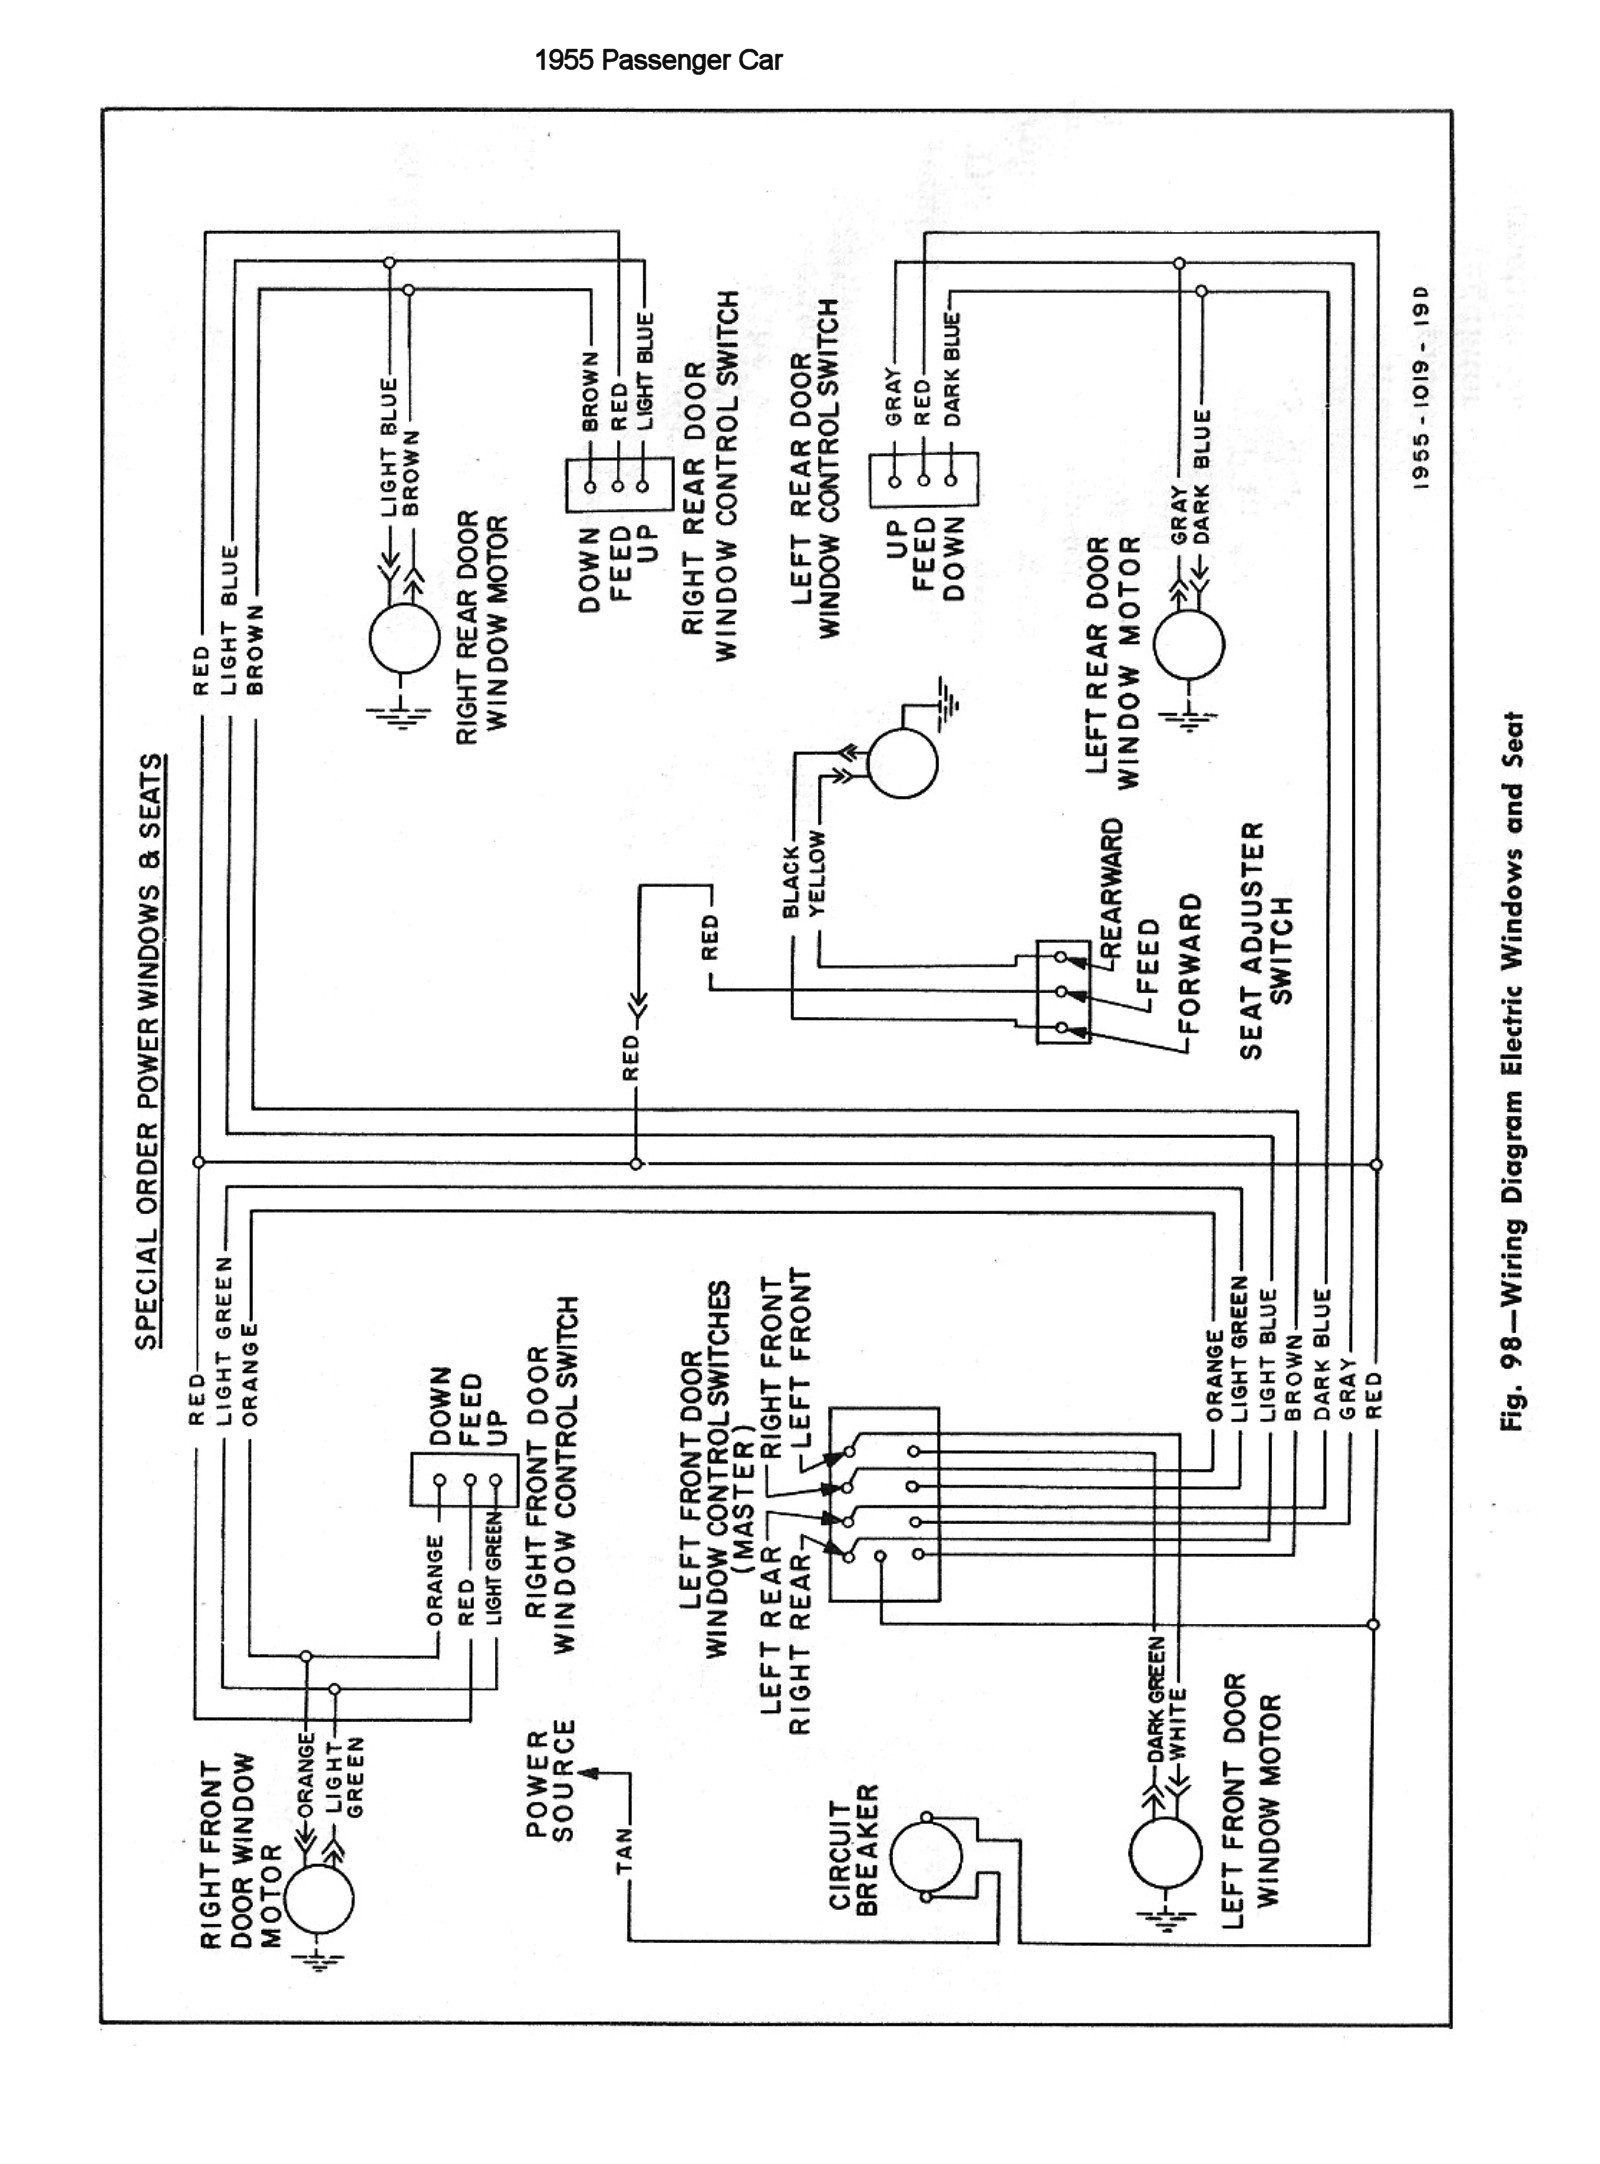 1955 Chevy Turn Signal Wiring Diagram | WiringDiagram.org